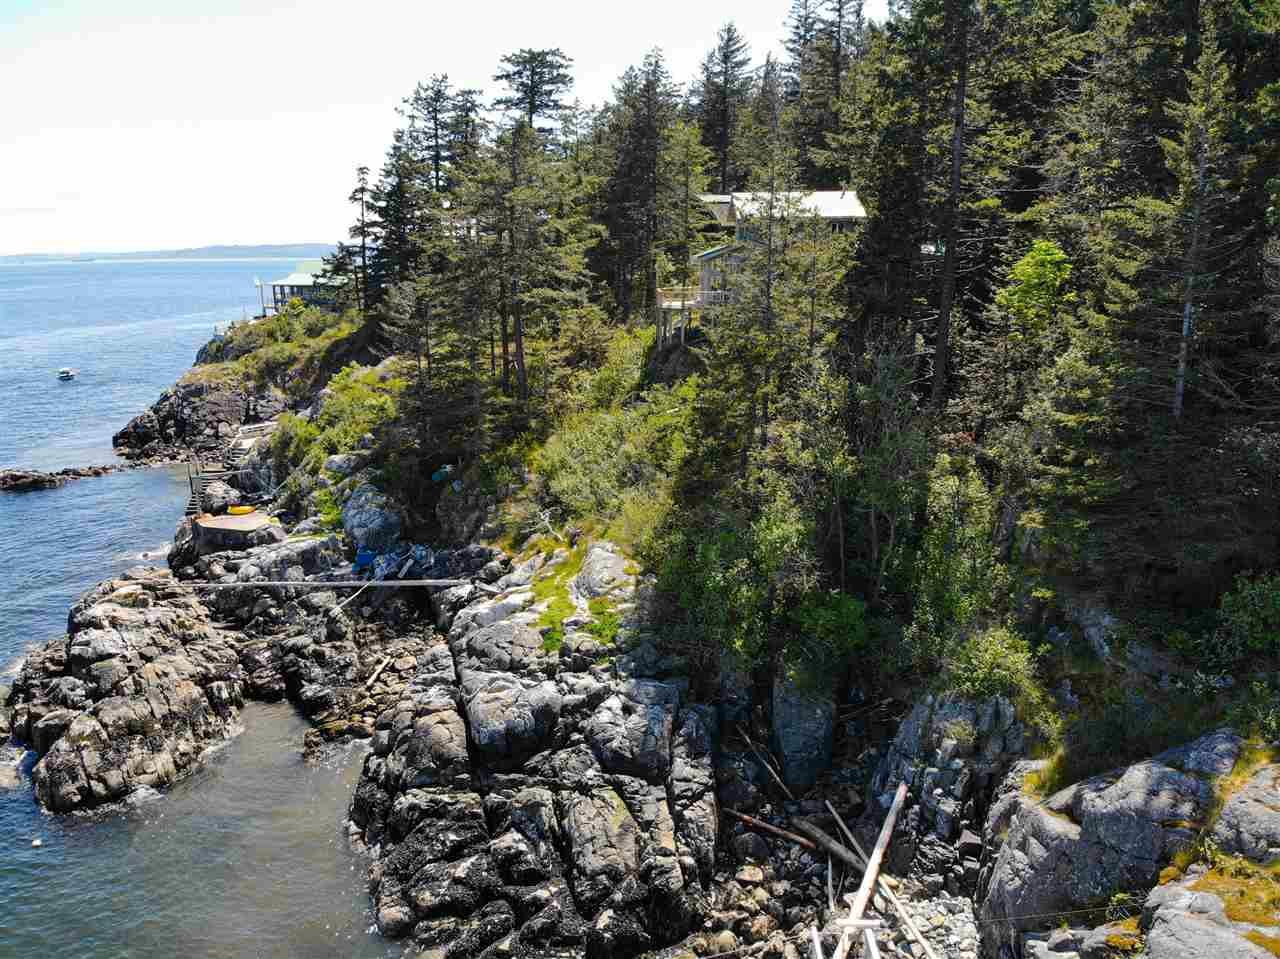 """Main Photo: 20 PASSAGE Island in West Vancouver: Howe Sound Land for sale in """"PASSAGE ISLAND"""" : MLS®# R2412226"""